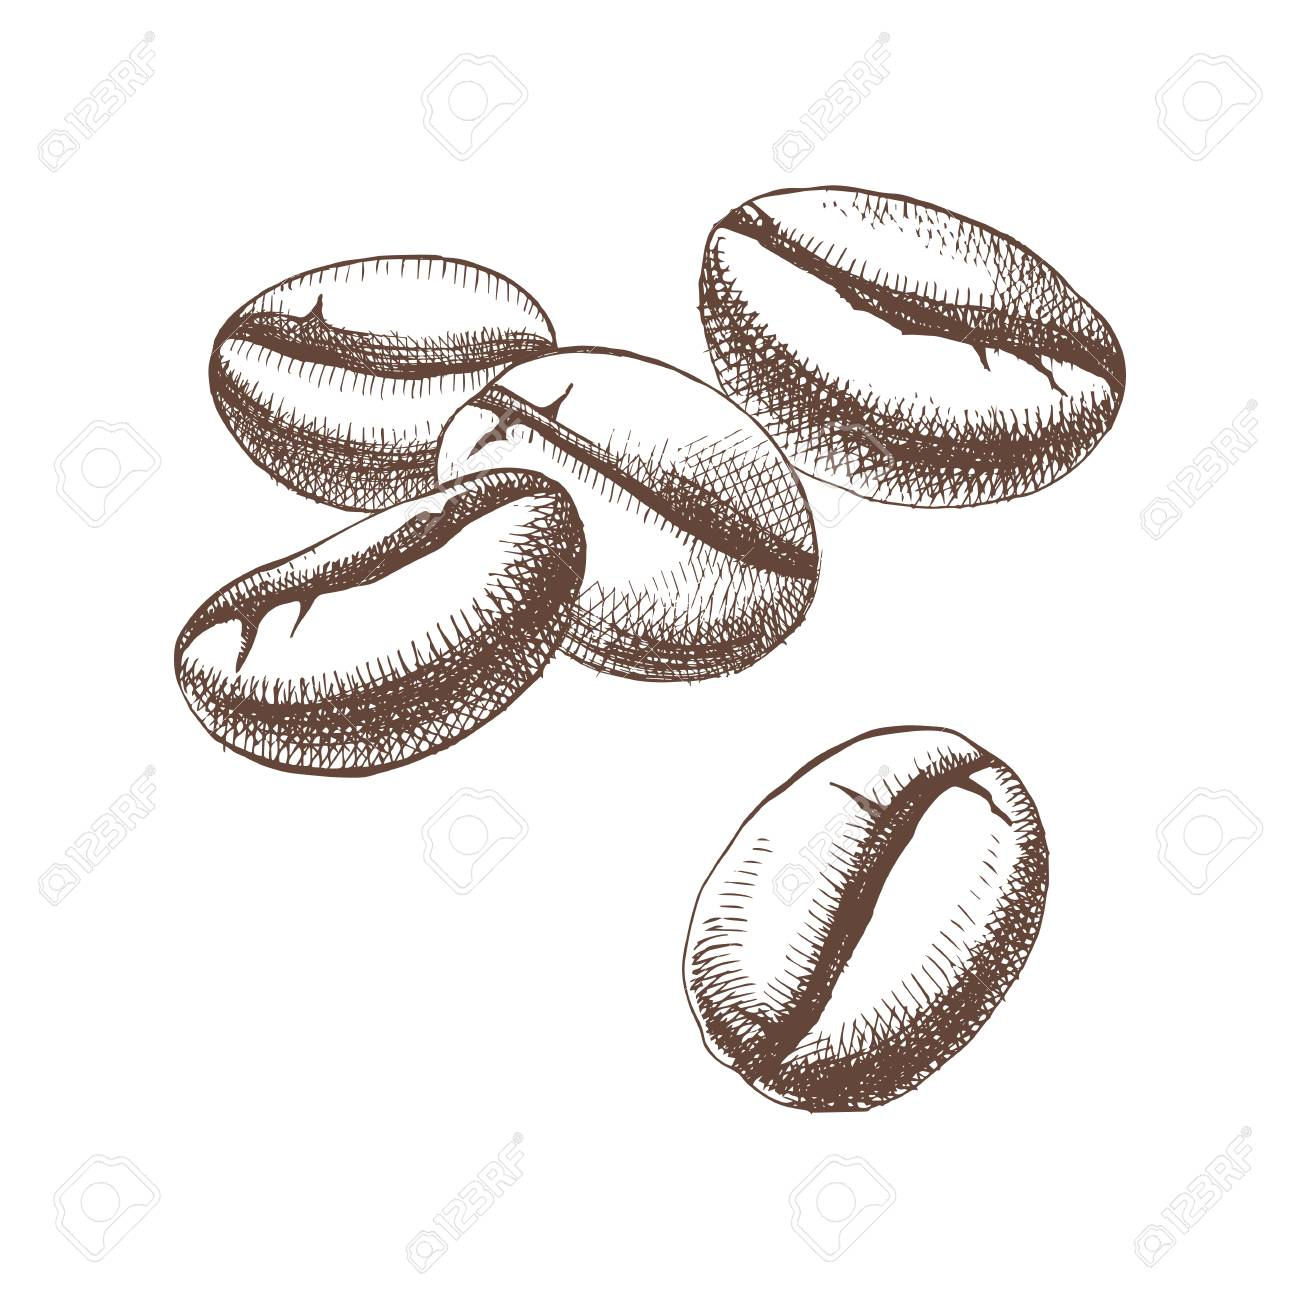 Hand sketched coffee beans - 107813961